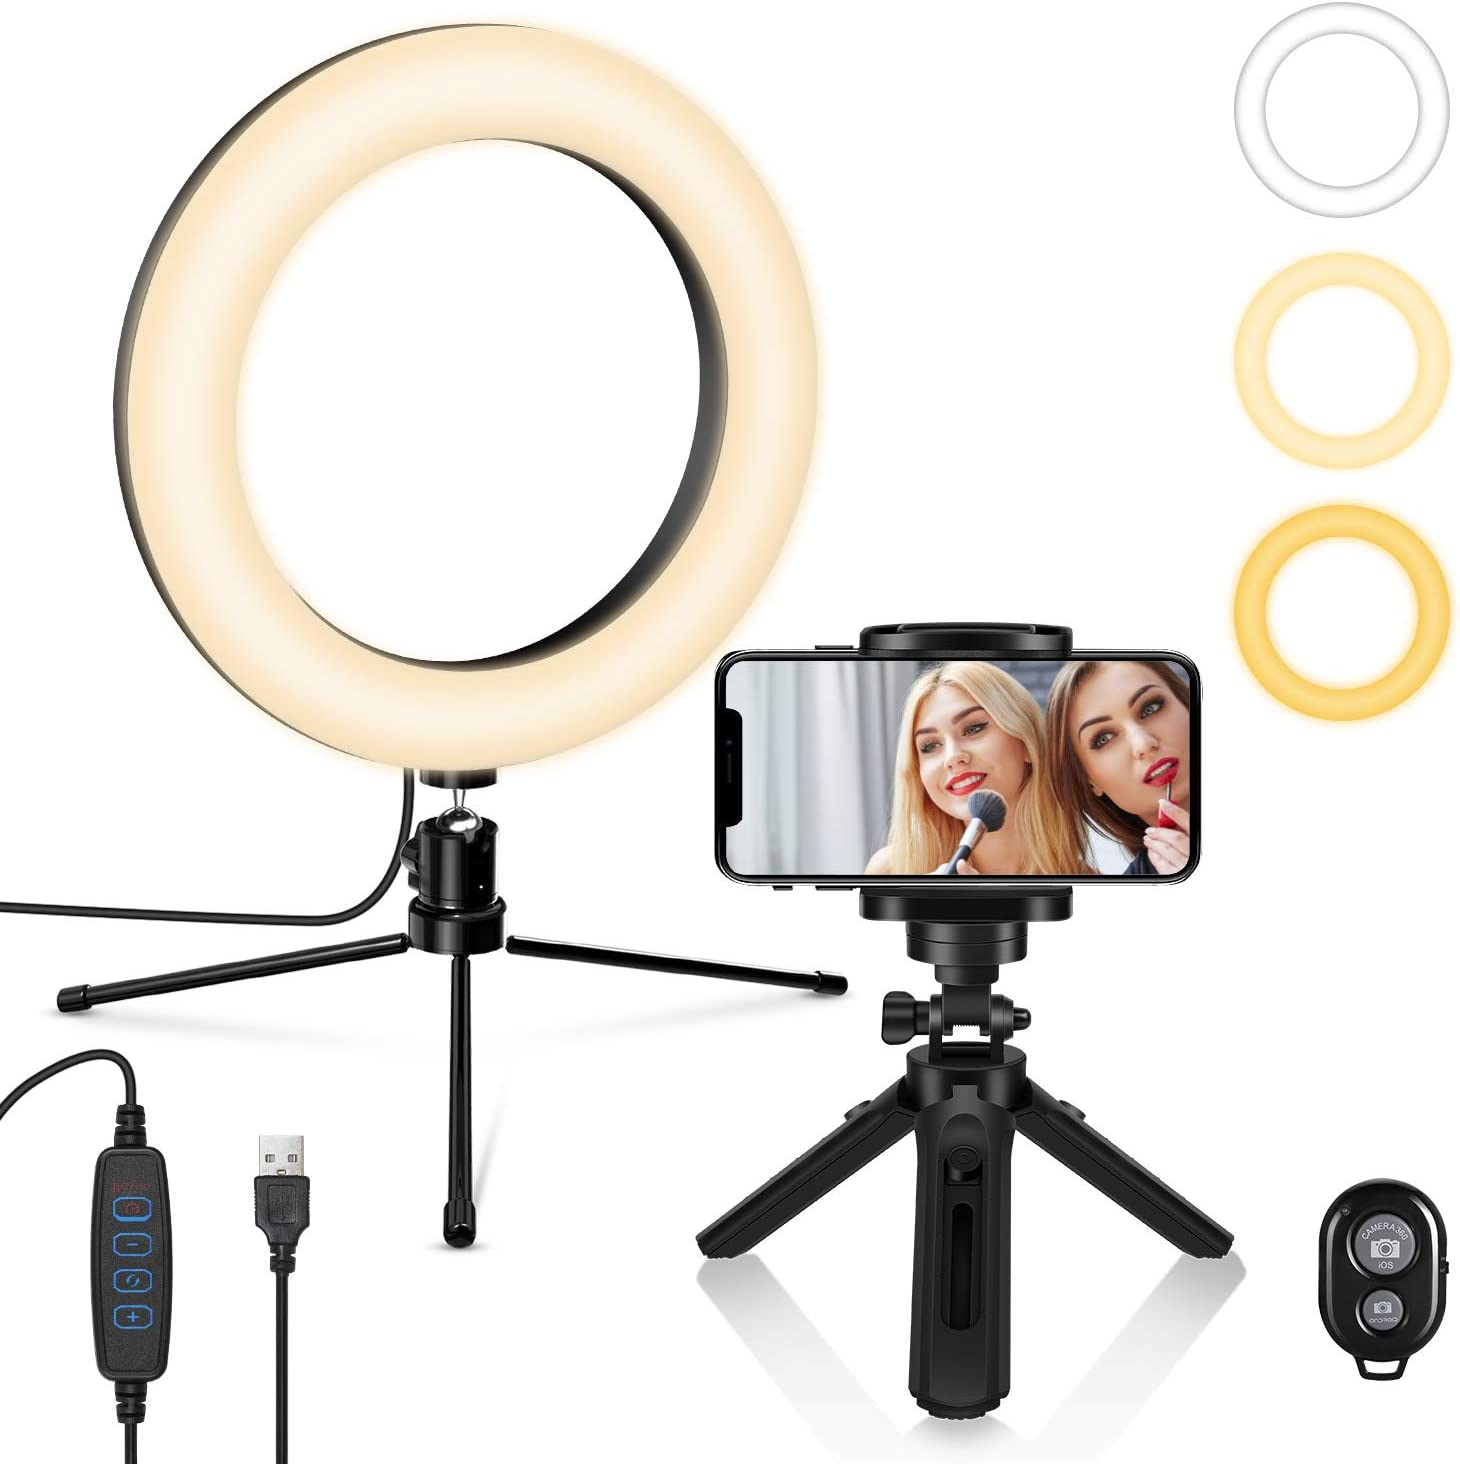 Zronji Broadcast Live Photography Fill Light LED Camera Phone Flash Dimmable Light On-Camera Video Lights